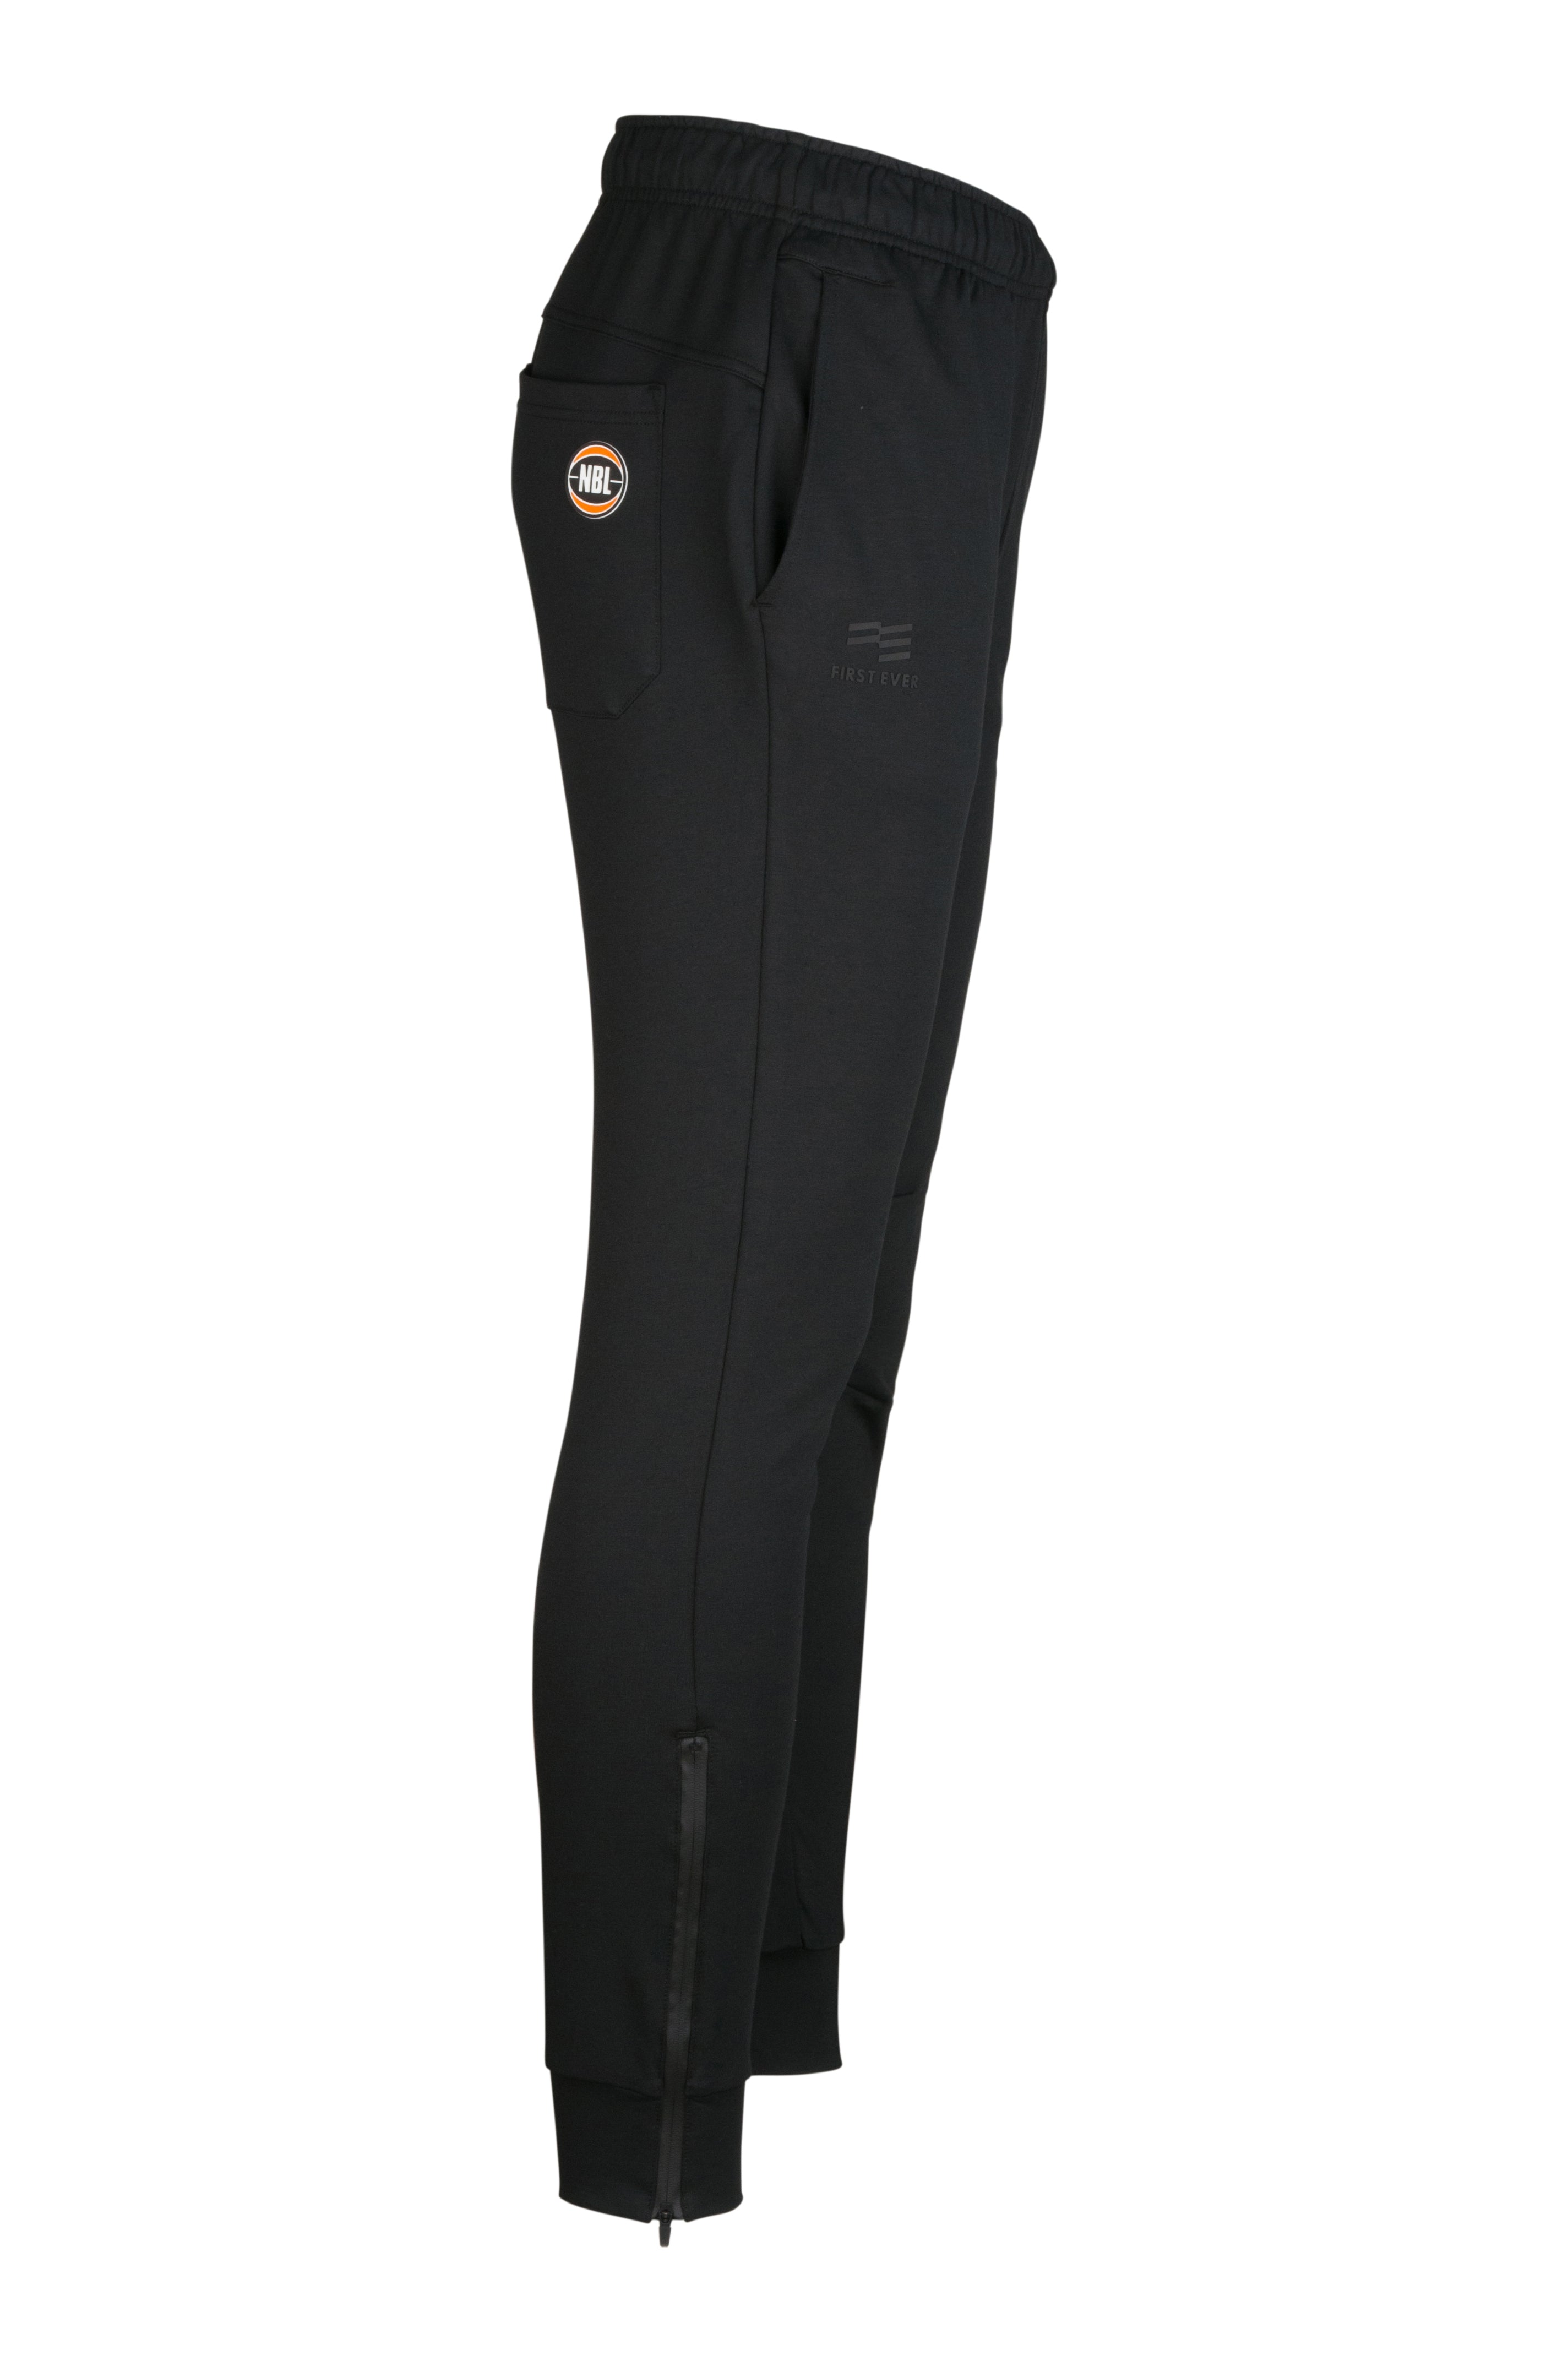 Melbourne United 19/20 Performance Trackpant